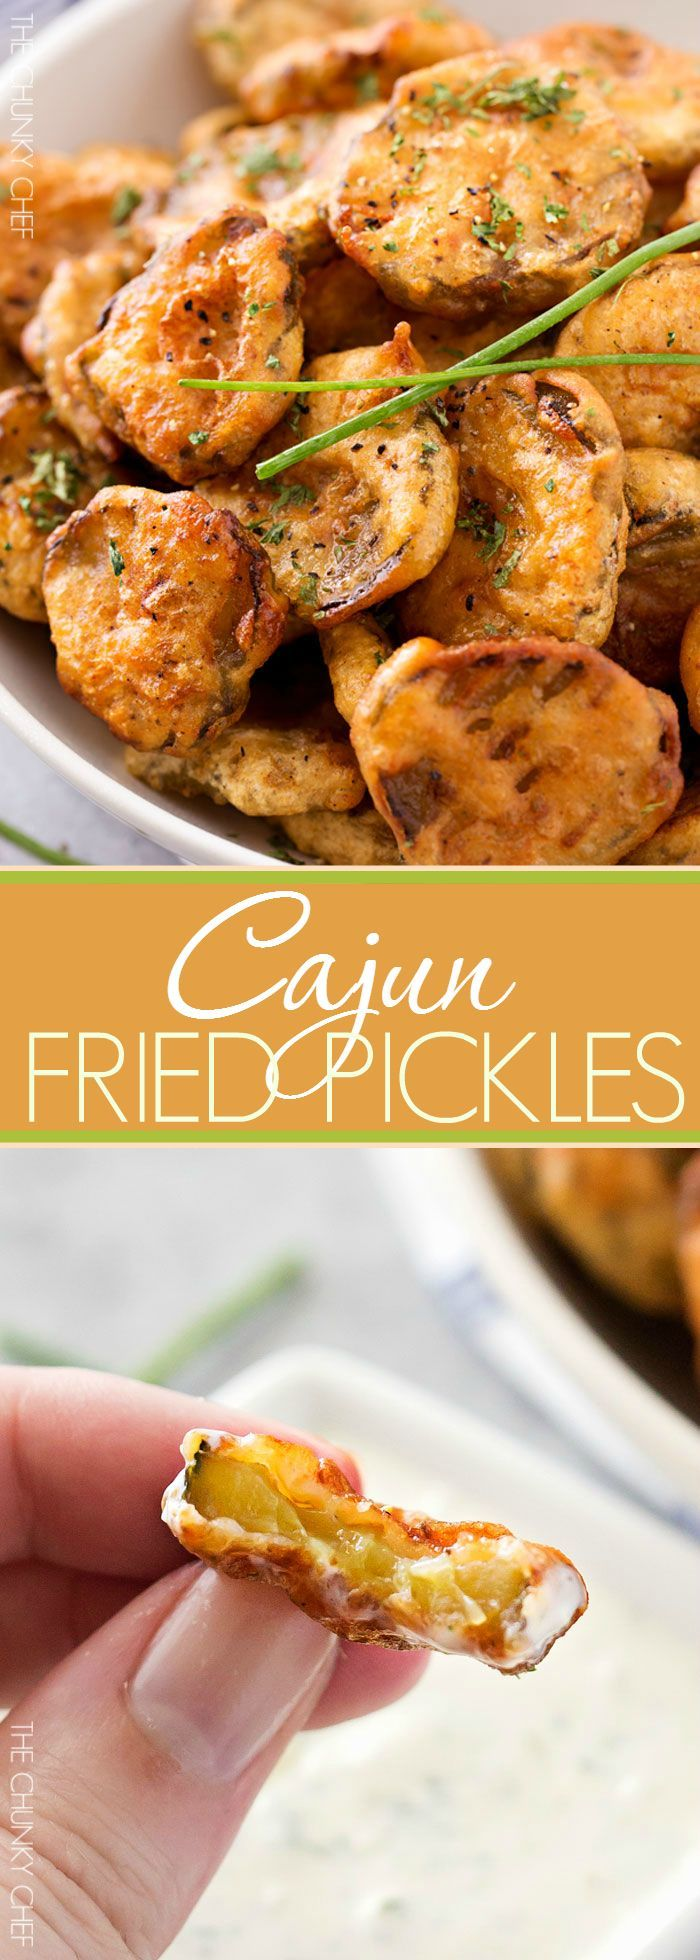 Best Deep Fried Pickles Batter Ideas On Pinterest - Backyard batter